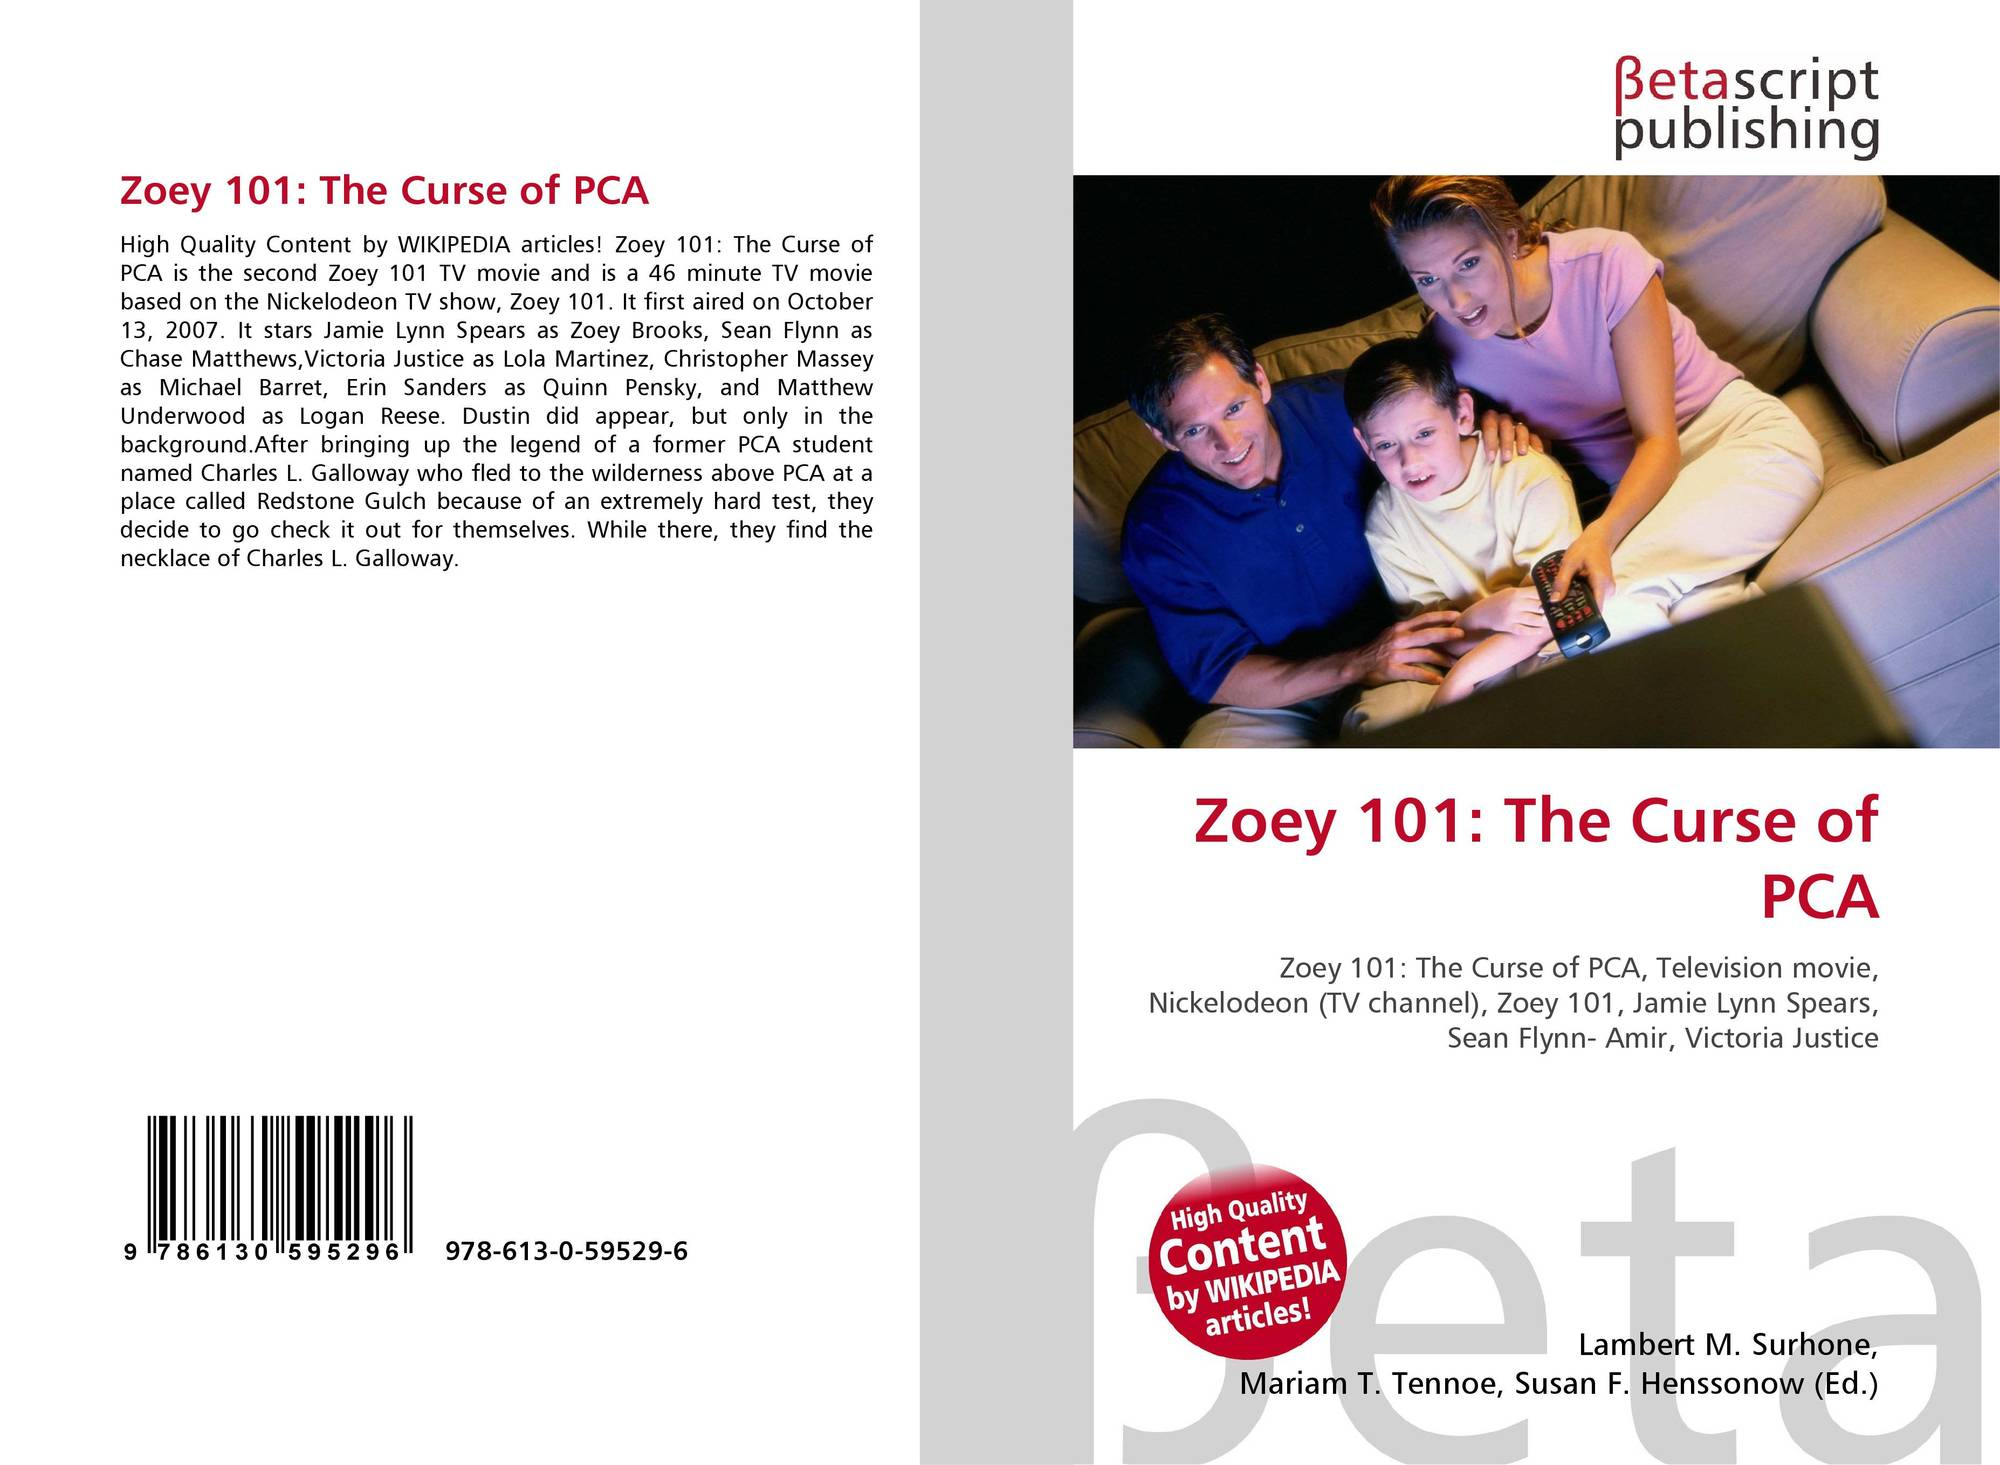 Zoey 101 The Curse Of Pca 978 613 0 59529 6 6130595298